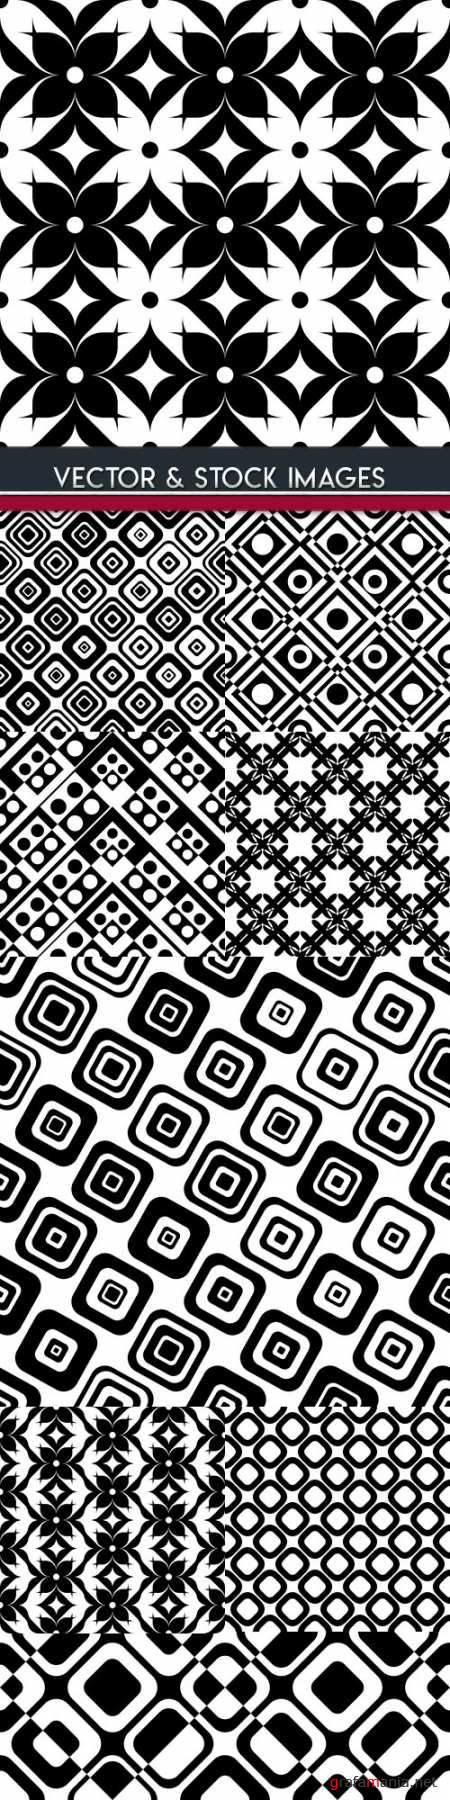 Modern abstract geometry seamless pattern design 33